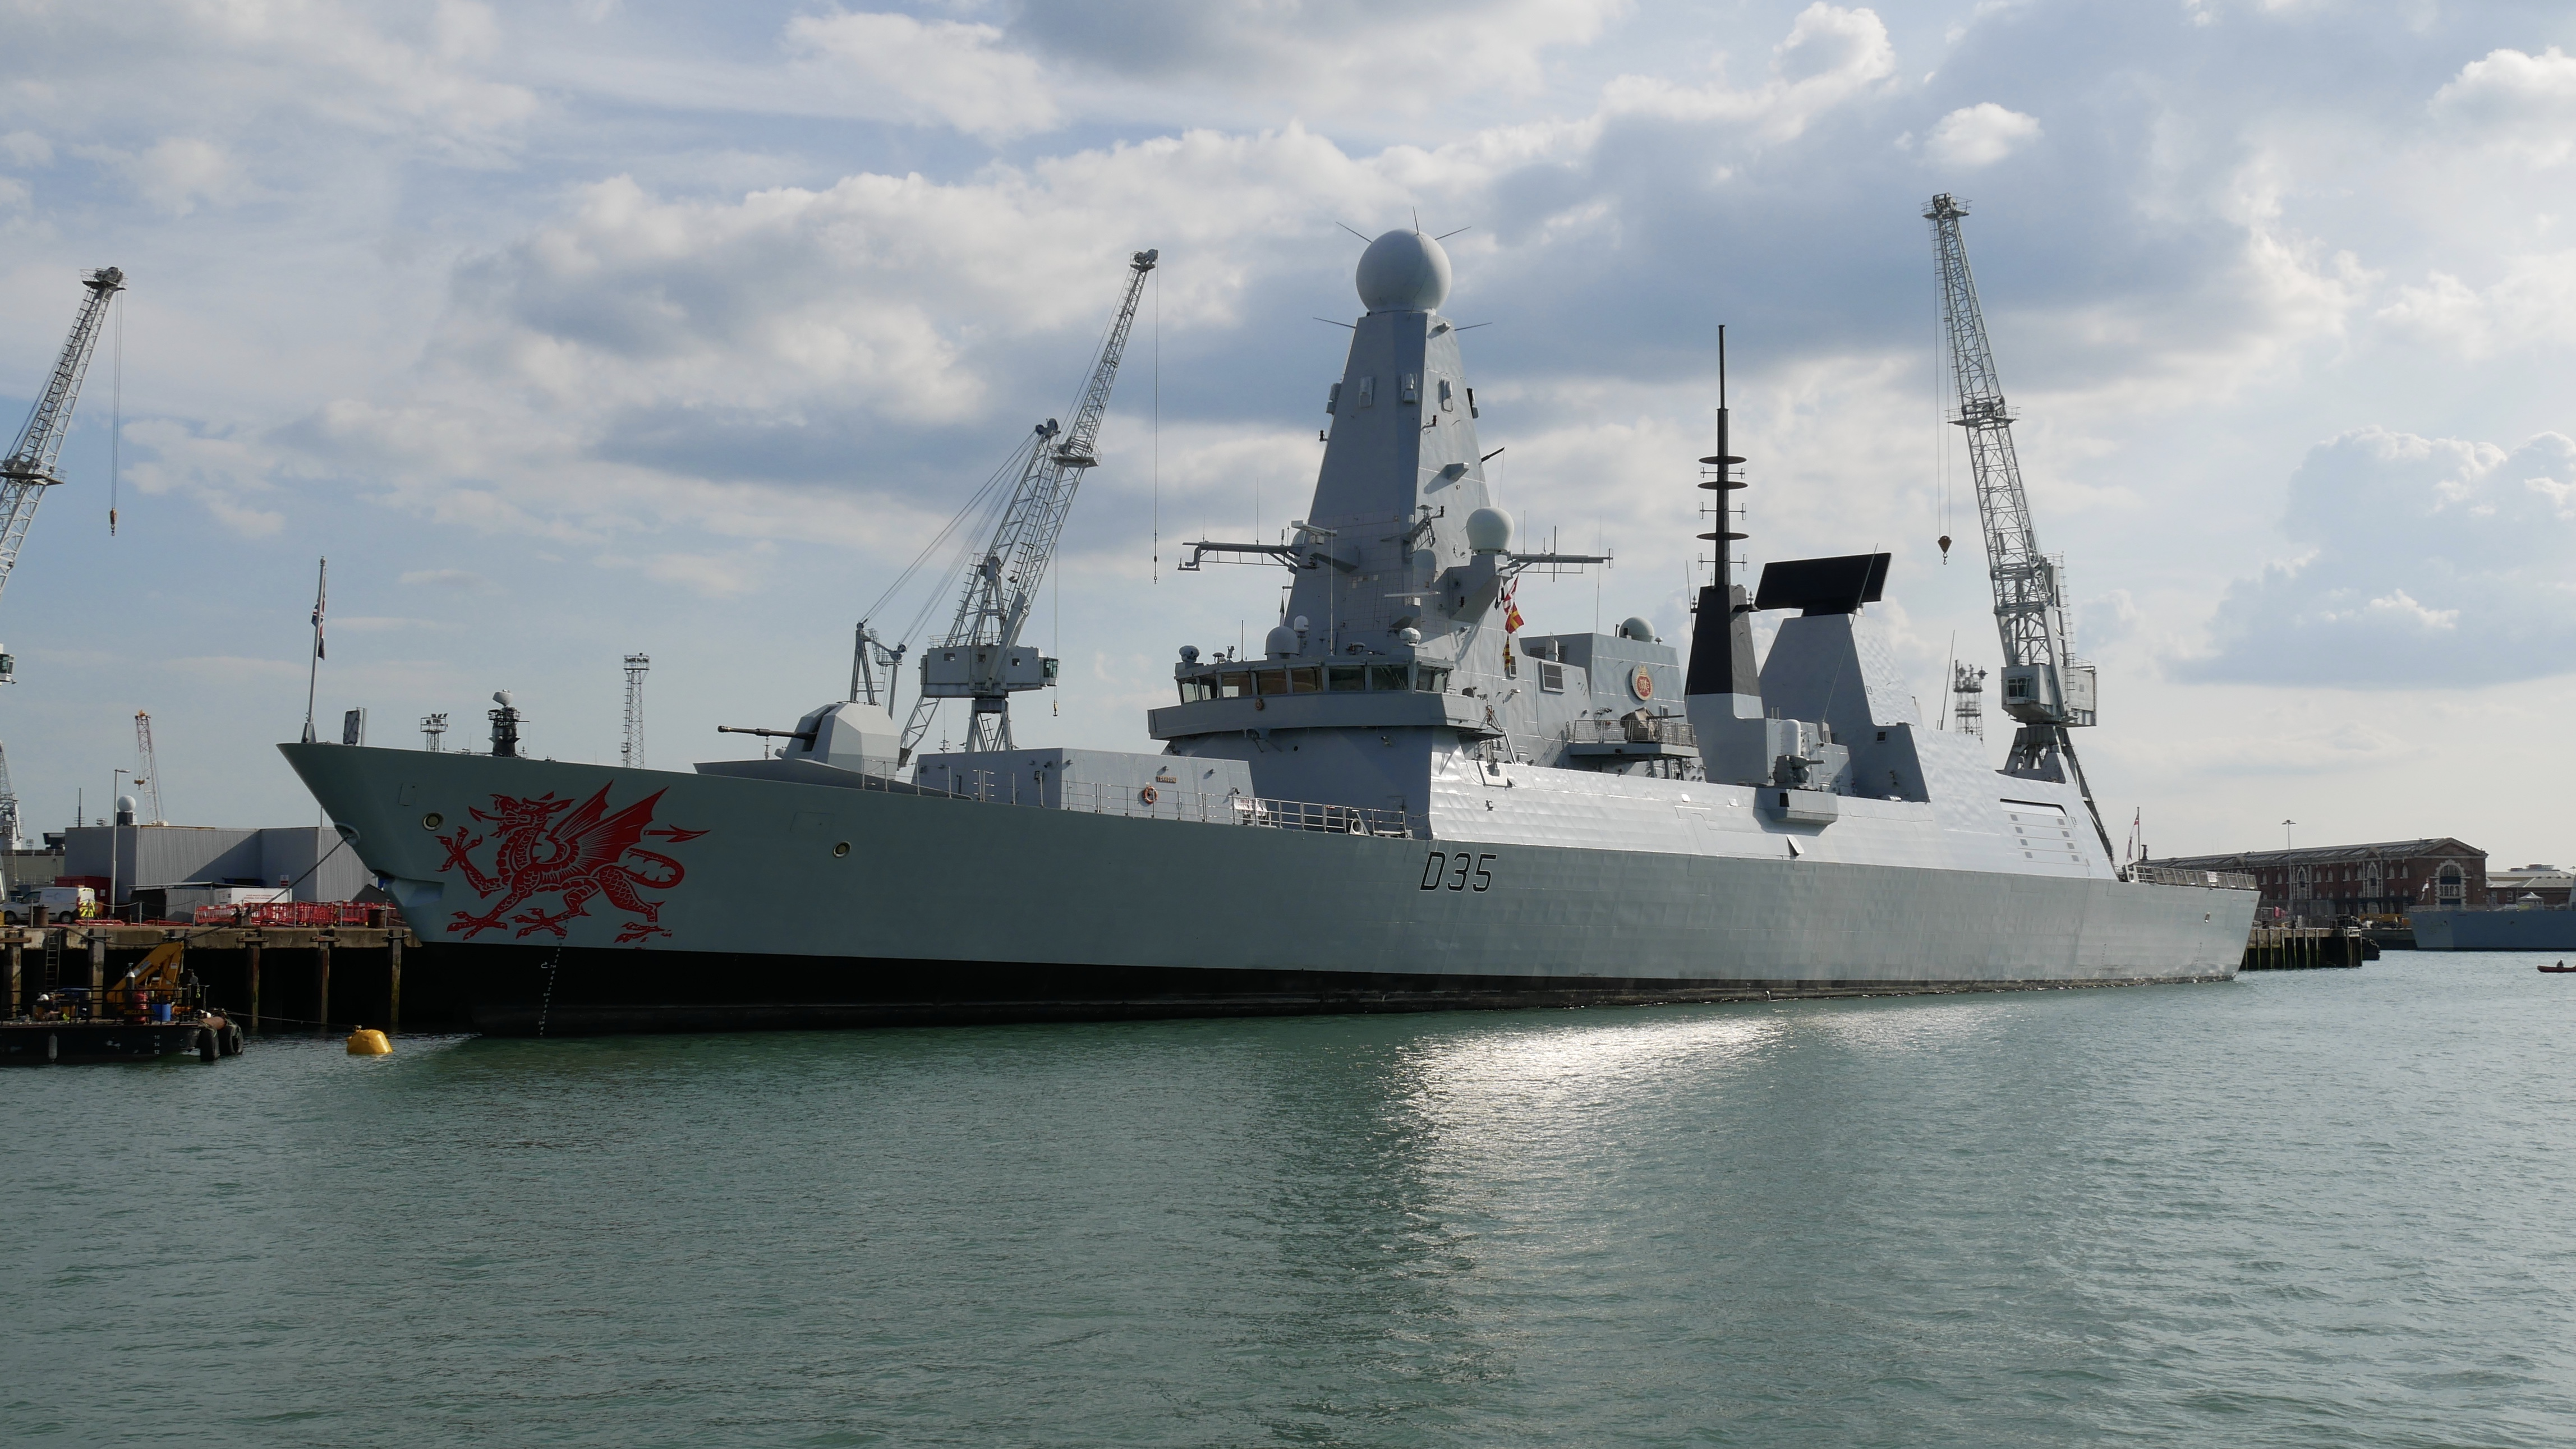 Type 45 Class destroyer - Page 3 36889788642_e830739c86_o